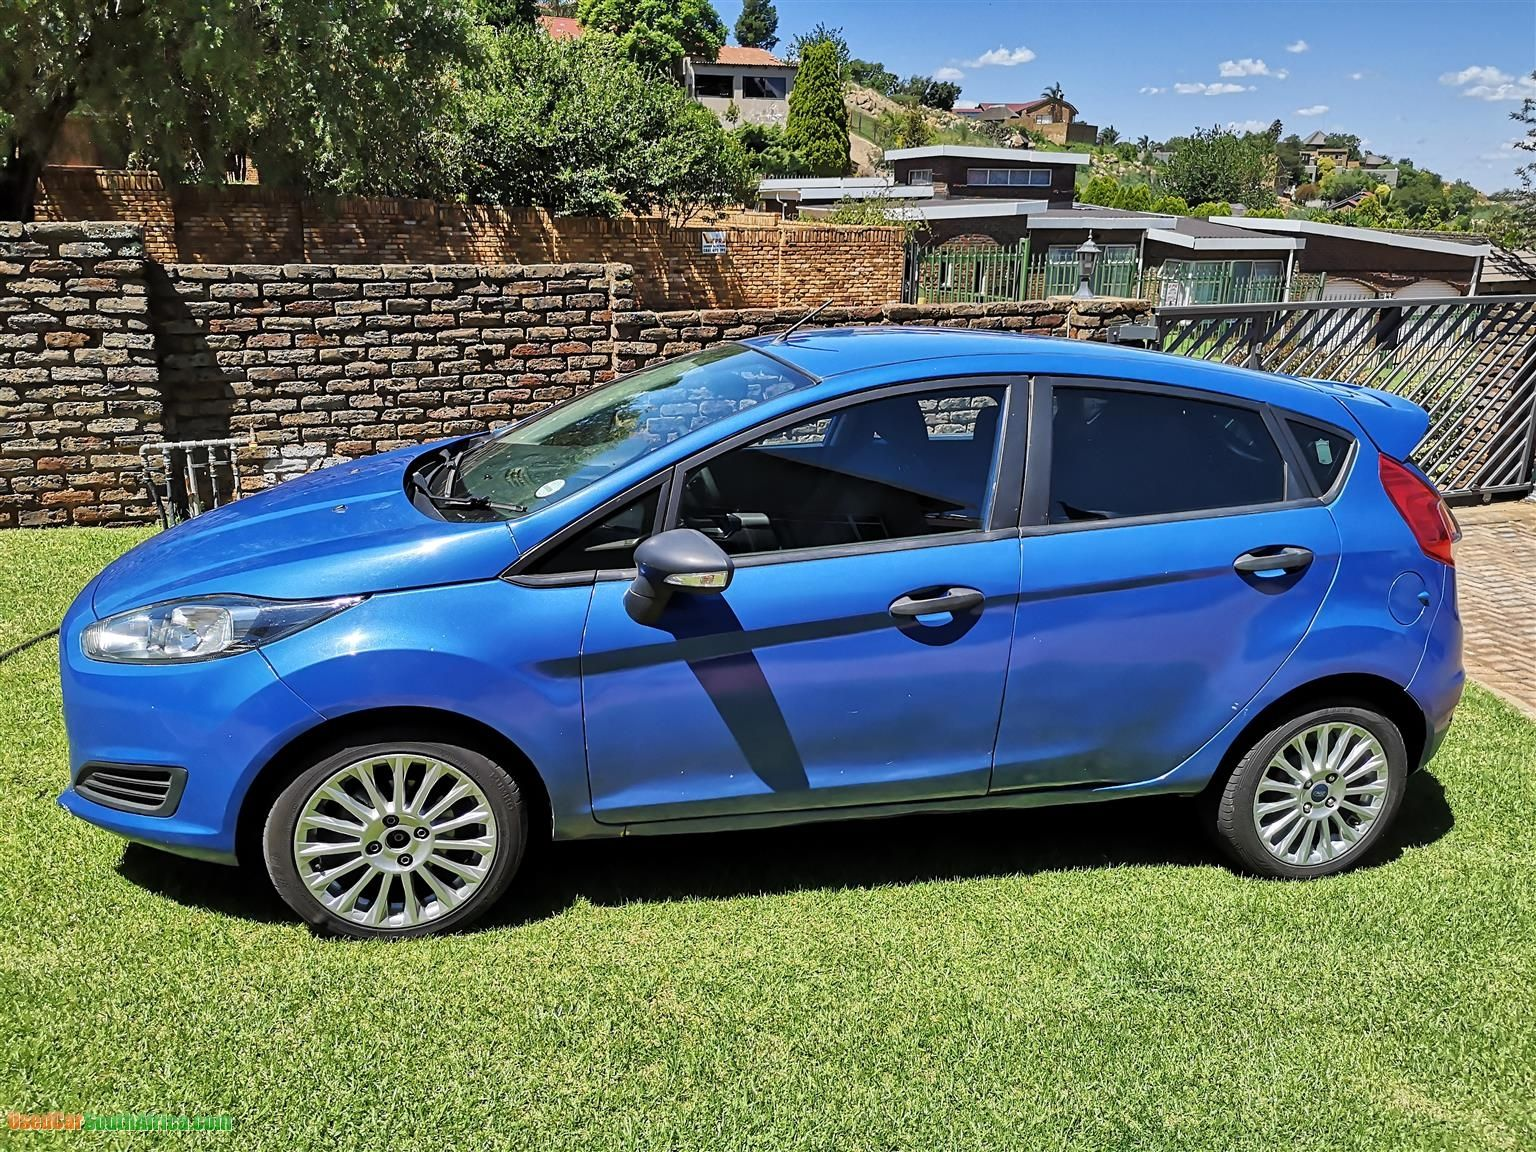 2004 Ford Fiesta 1.4i used car for sale in Edenvale